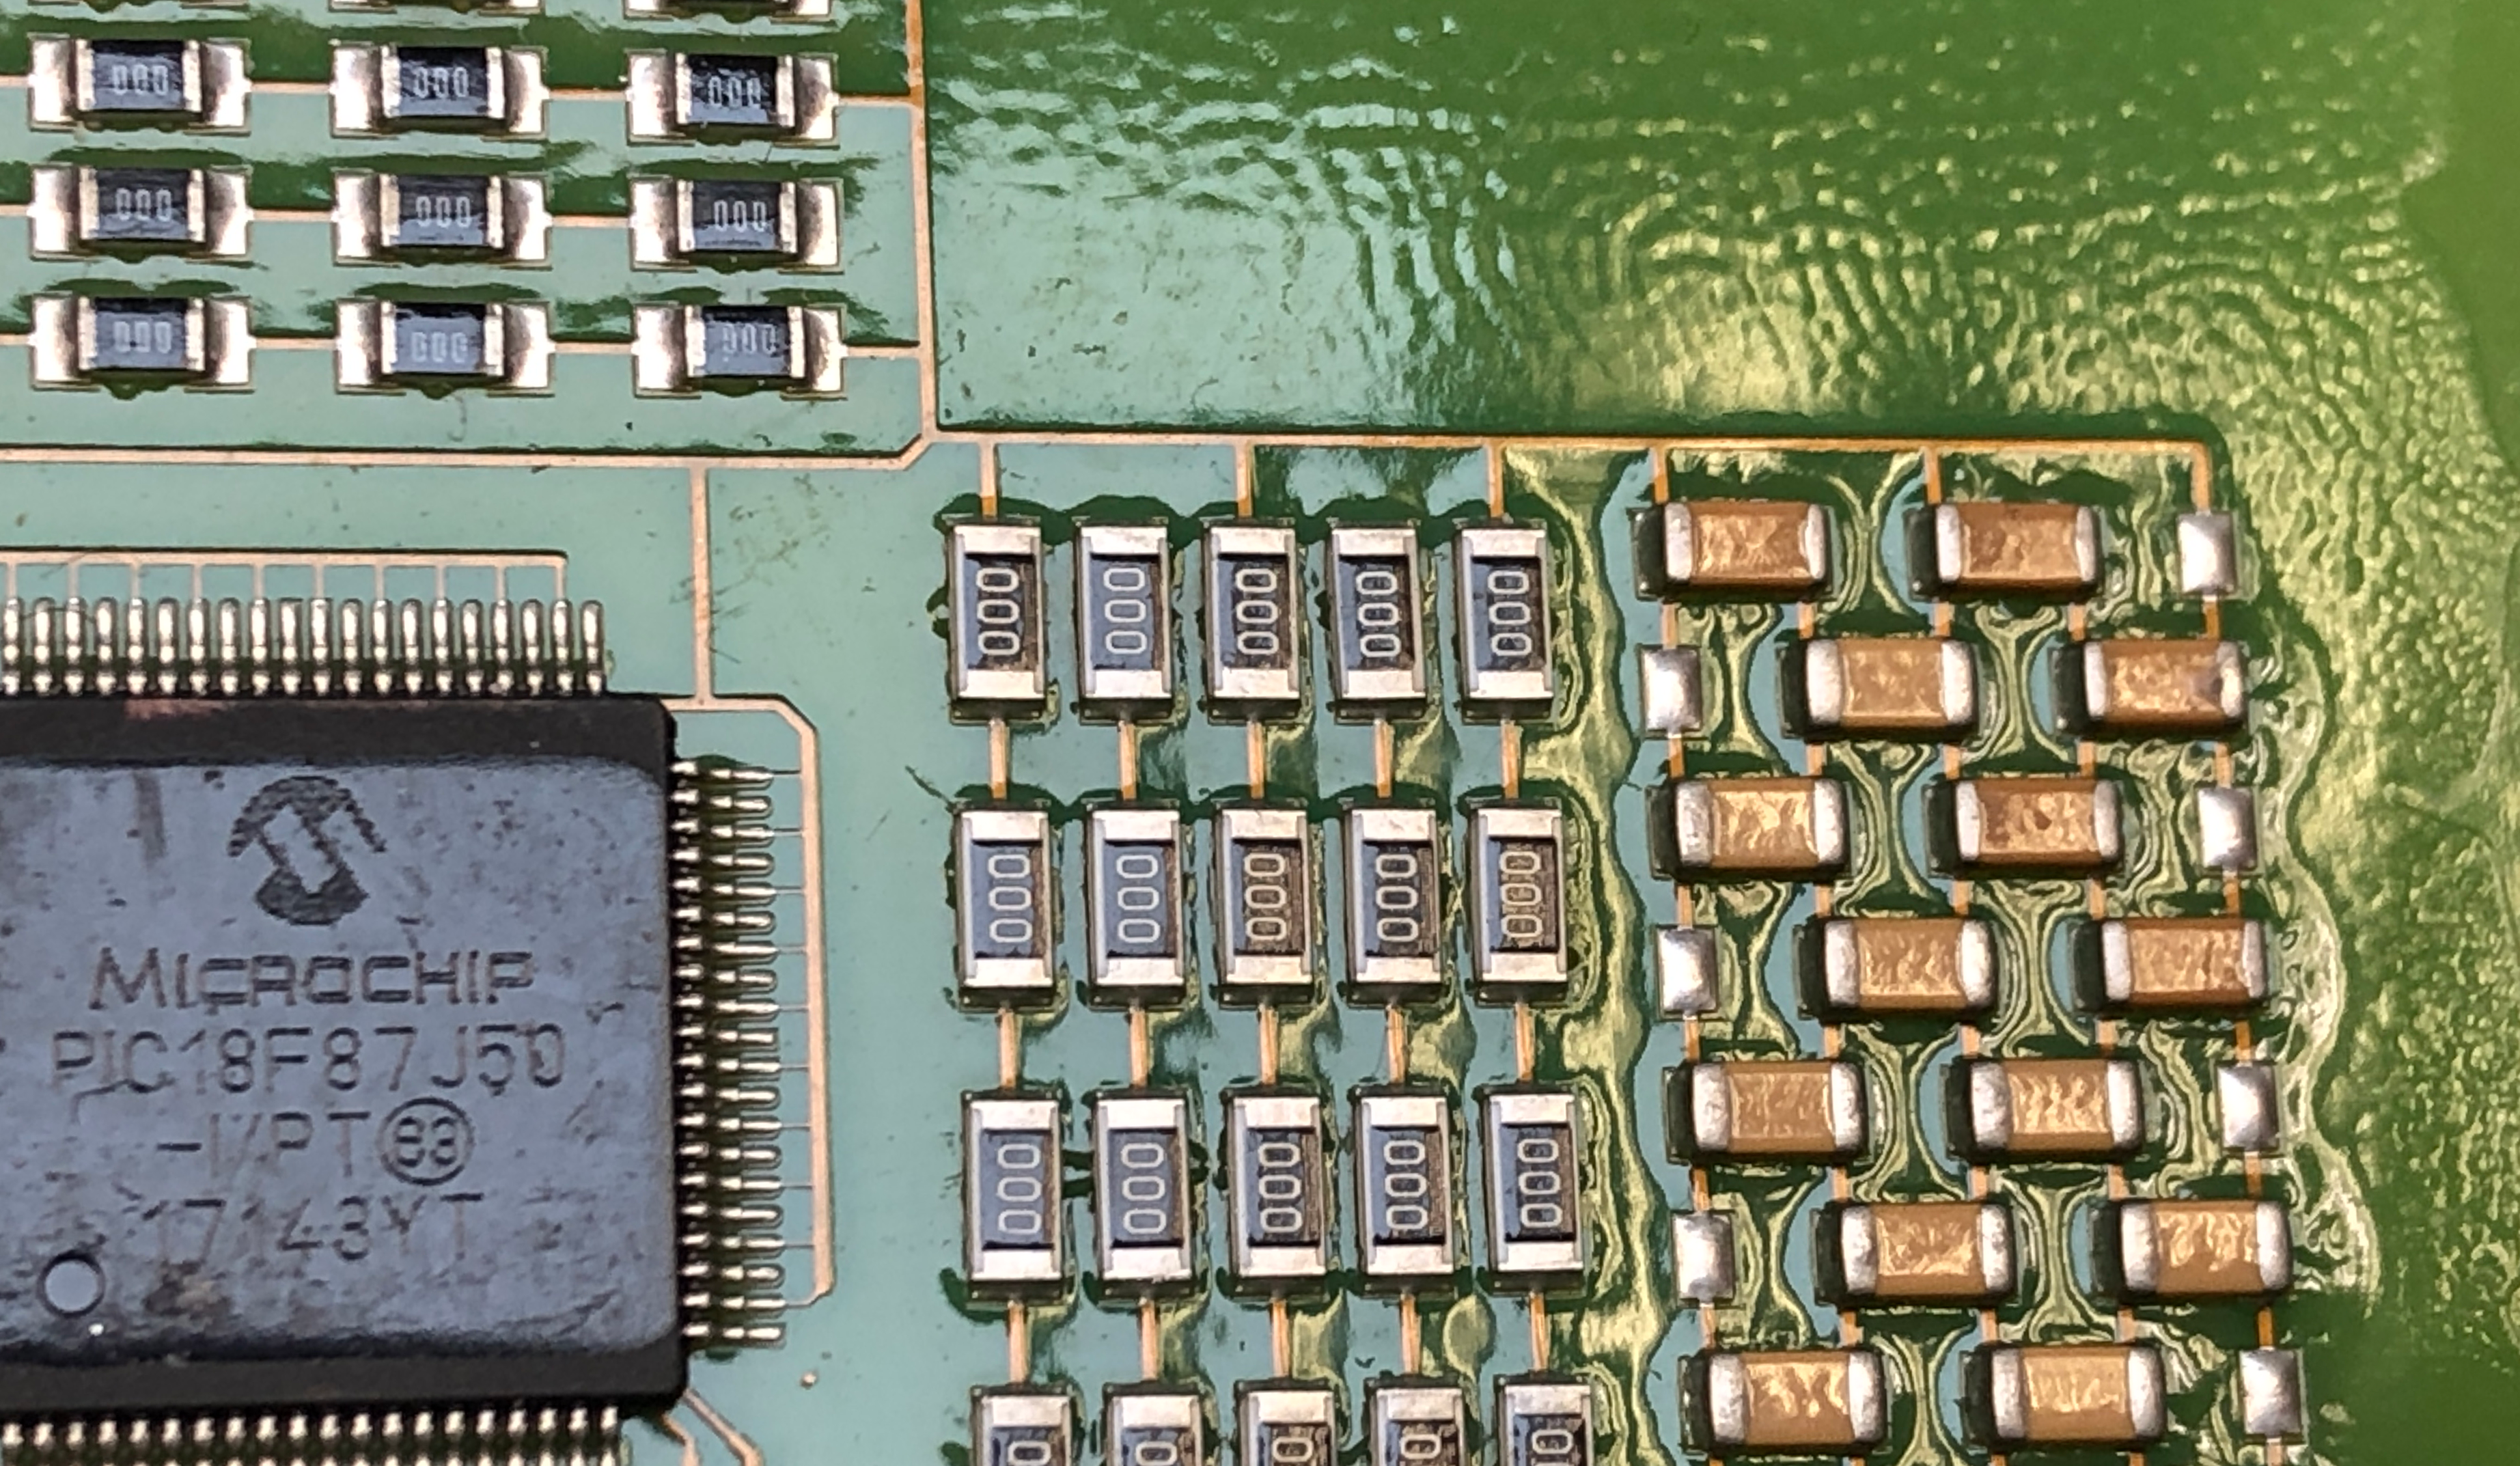 Orange peel on a PCB after being coated with conformal coatings